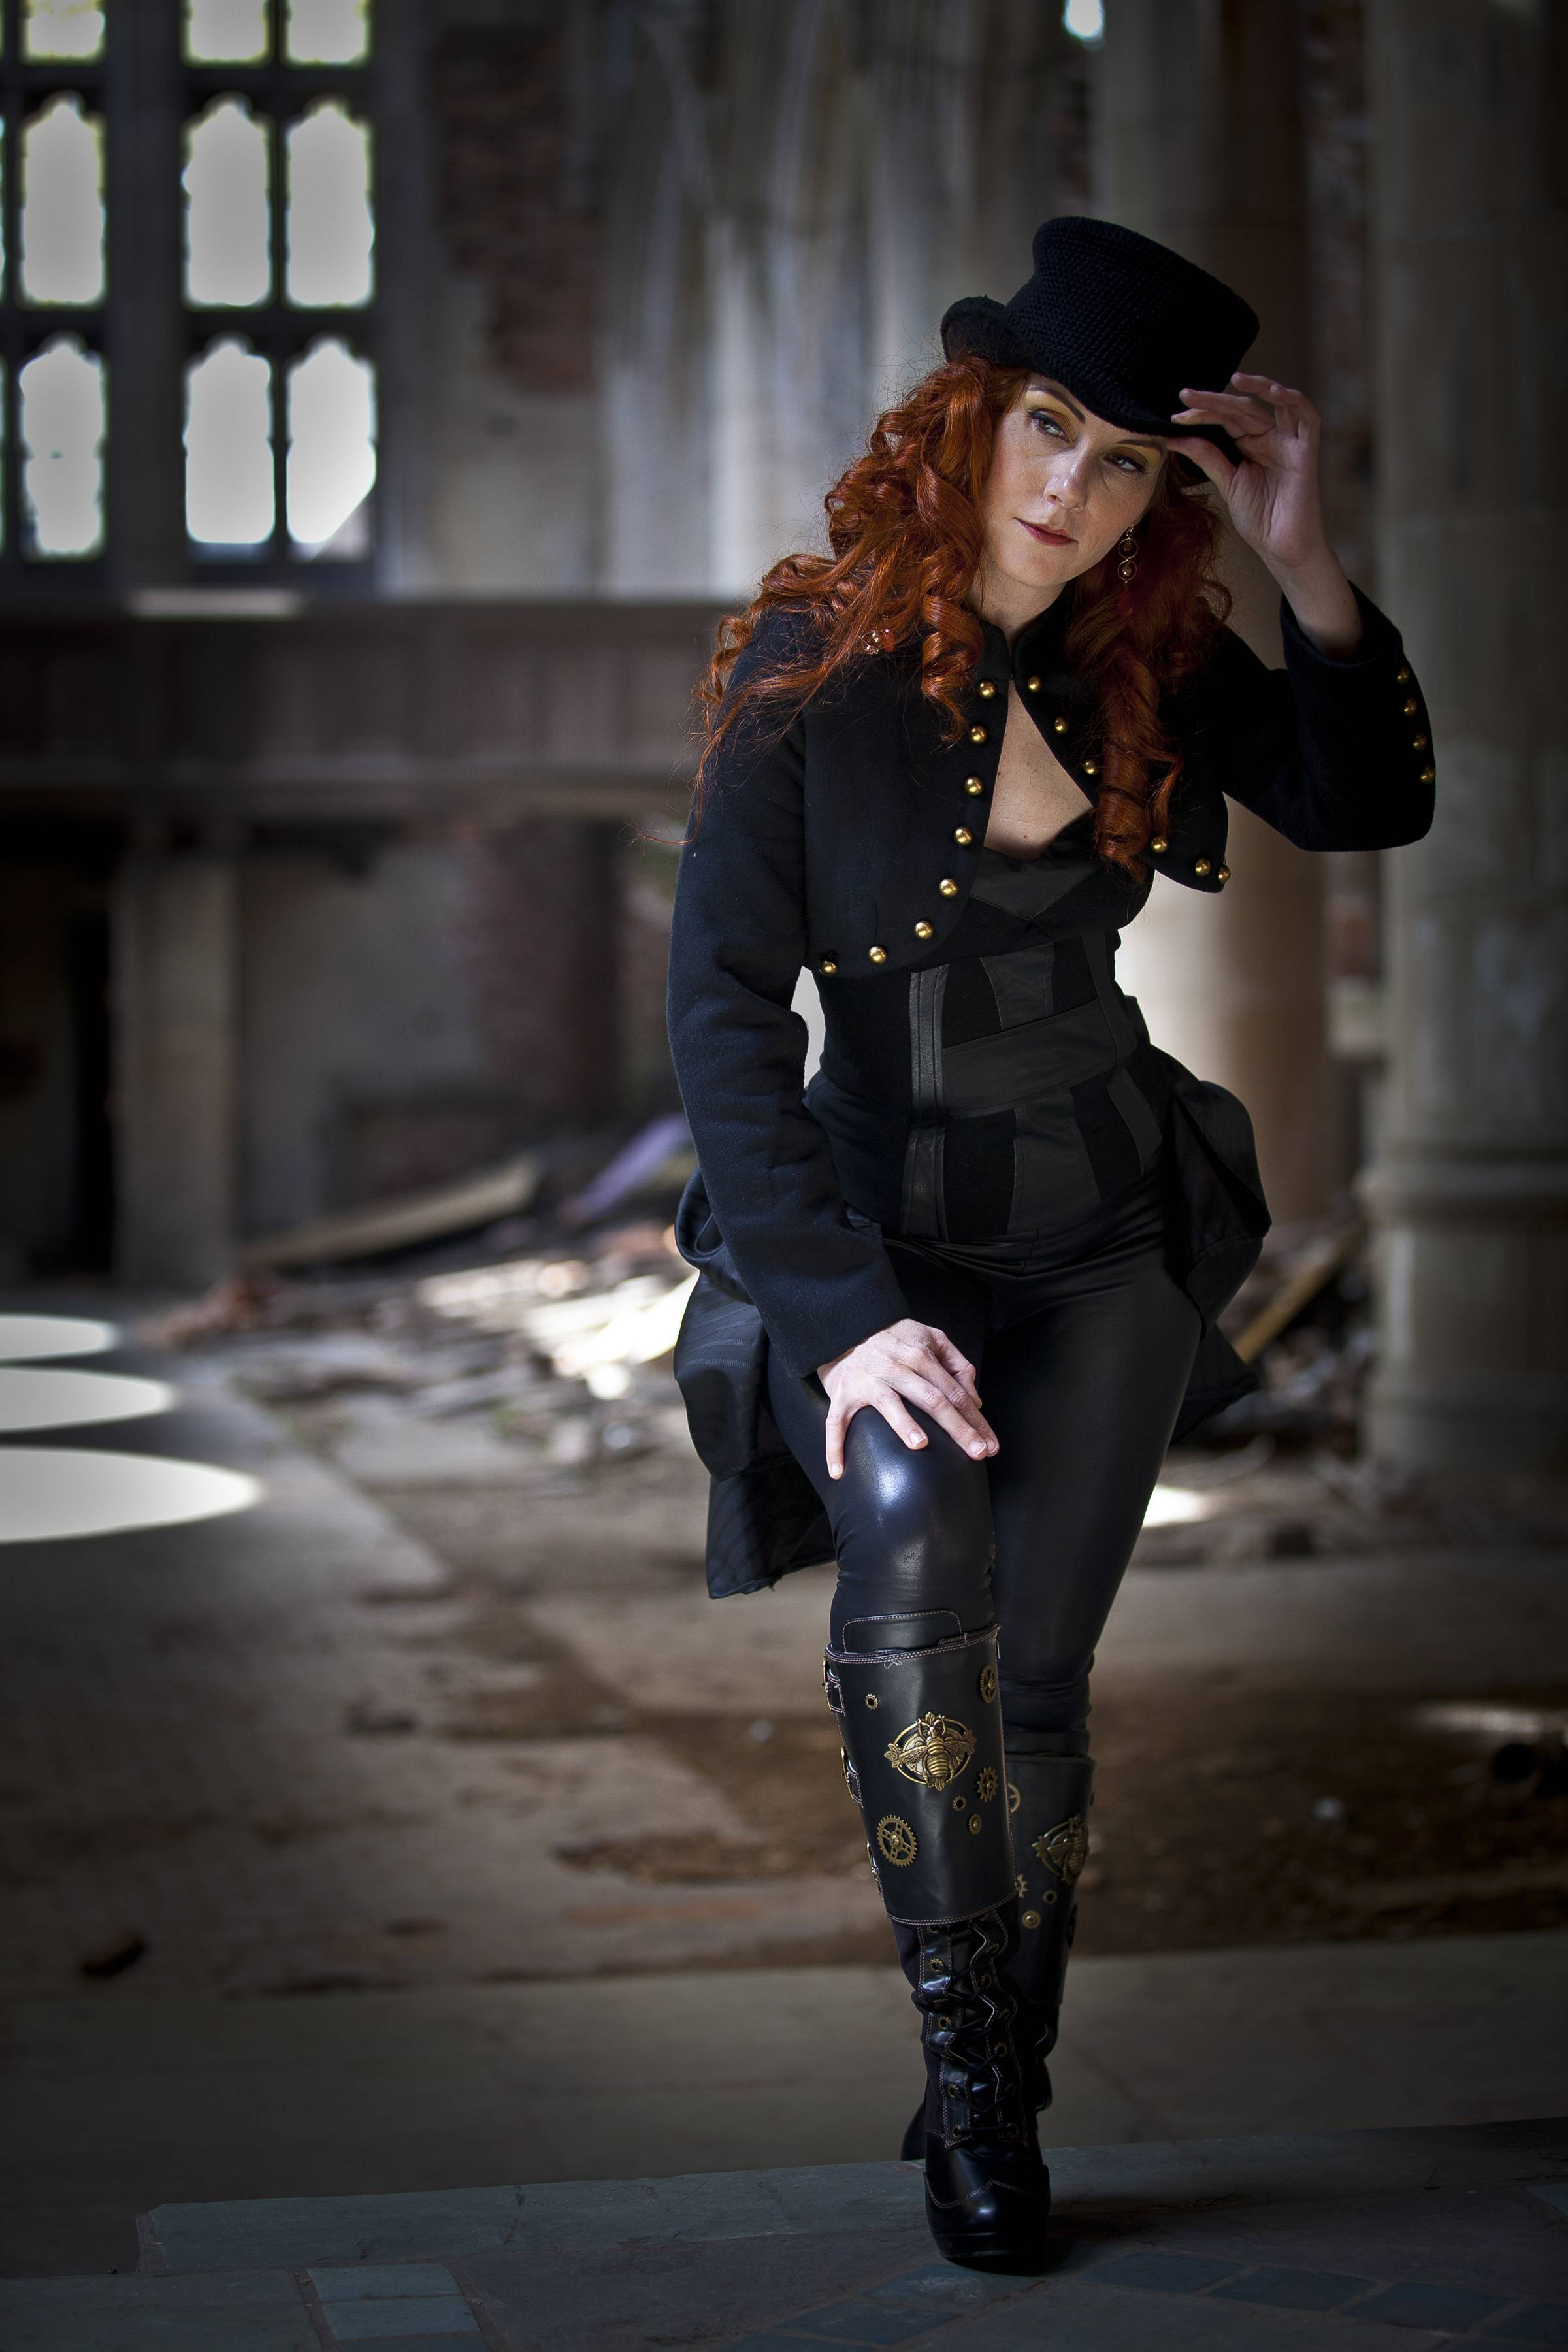 "Photographer Mike Smith's portrait ""Steampunk"" features a decorated training police officer in a character role.  She used the image as an entry in a Steampunk contest, a genre originating in the 1980s where a steam-powered era is combined with science fiction or fantasy; she is currently one of five runners-up in the contest."